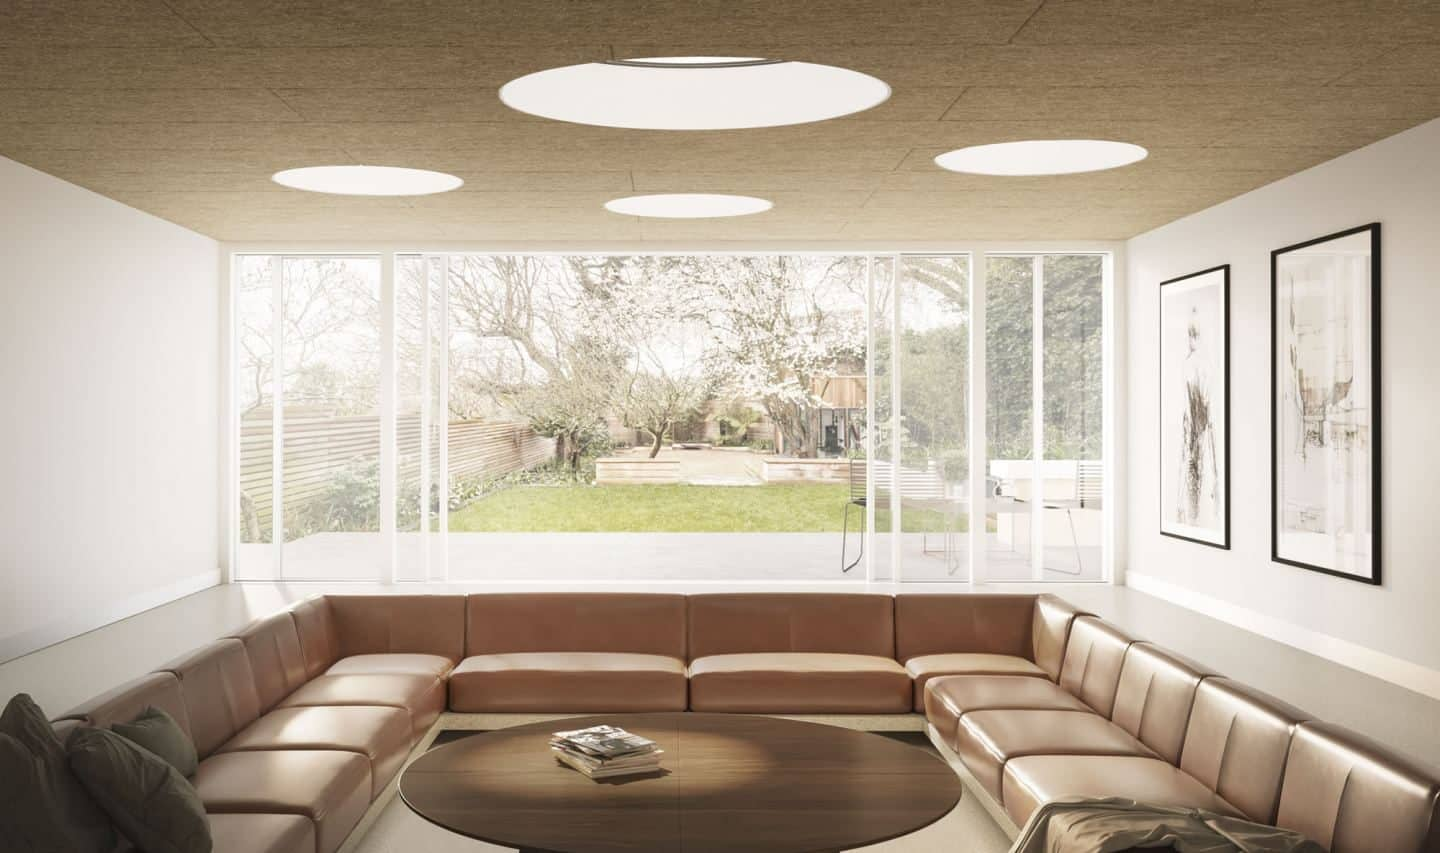 Vario by VELUX Bespoke Flat Roof Windows. The circular version pictured above a large sunken seating area